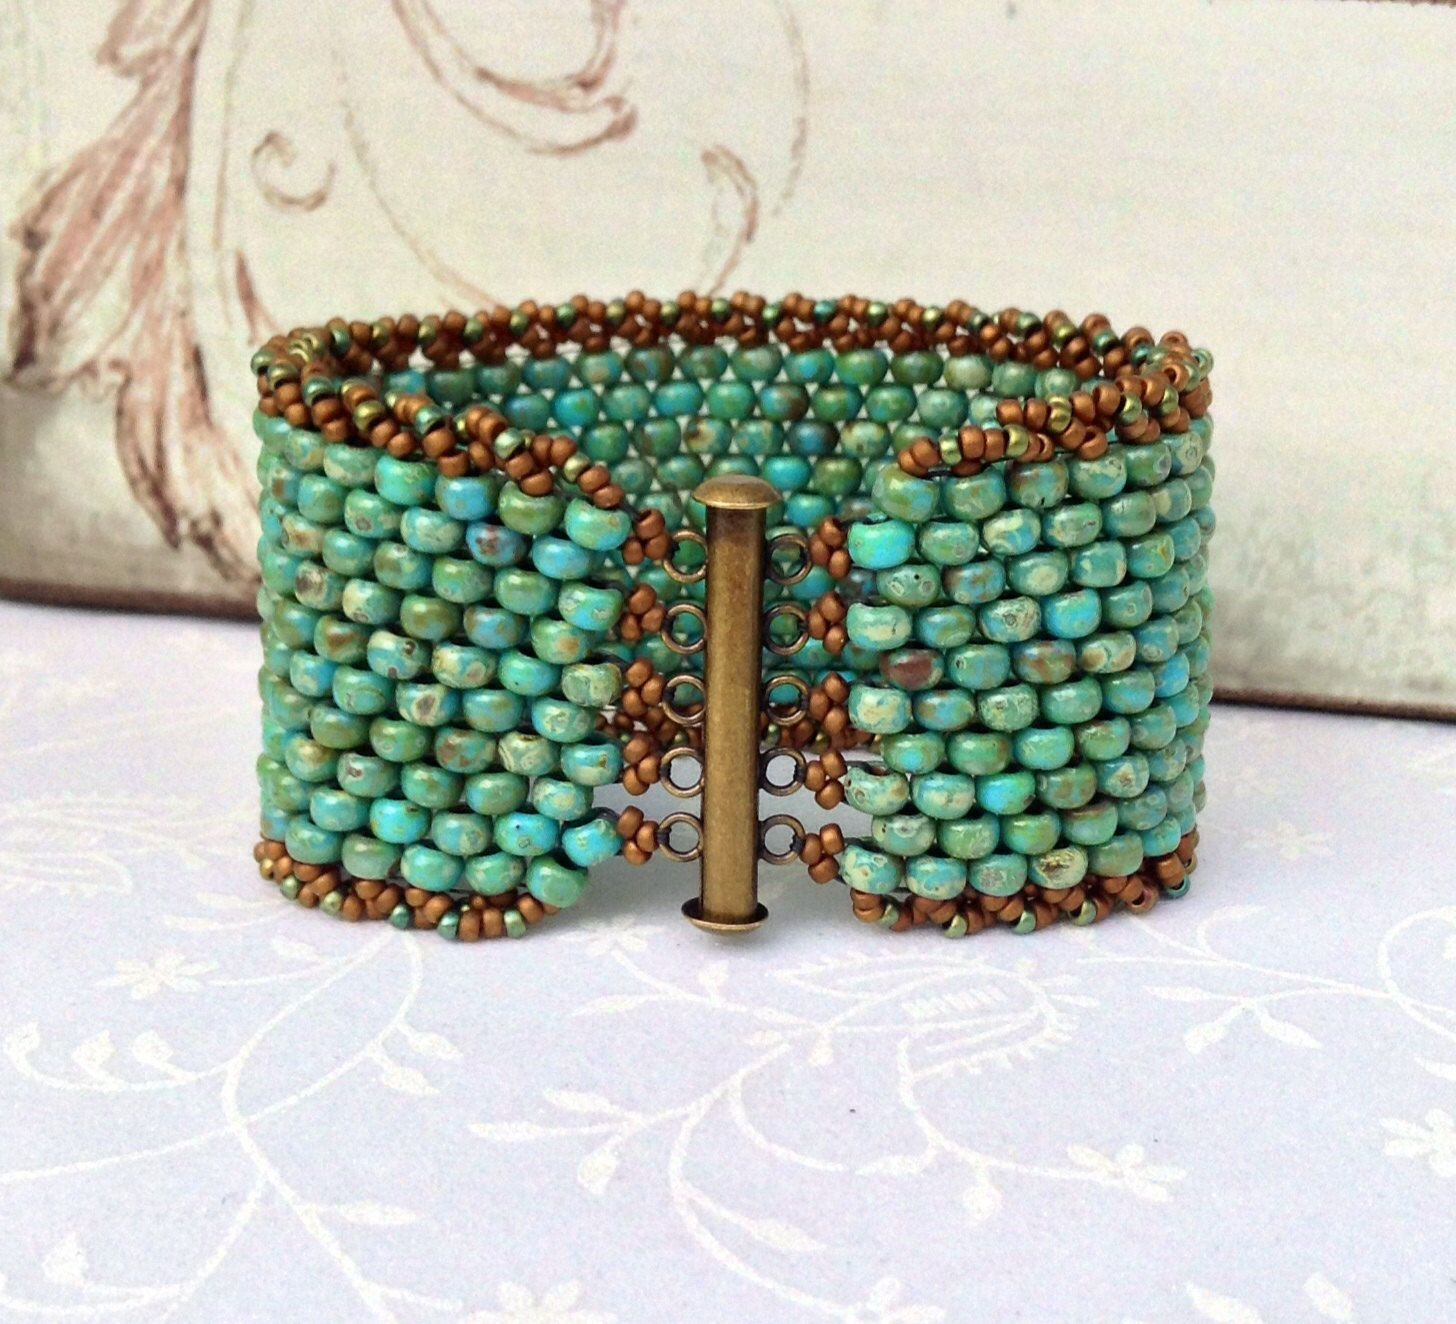 Peyote Sch Beaded Bracelet Beadweaving Rustic Turquoise Czech Cuff Antique Br Western Boho Chic By Country Charms